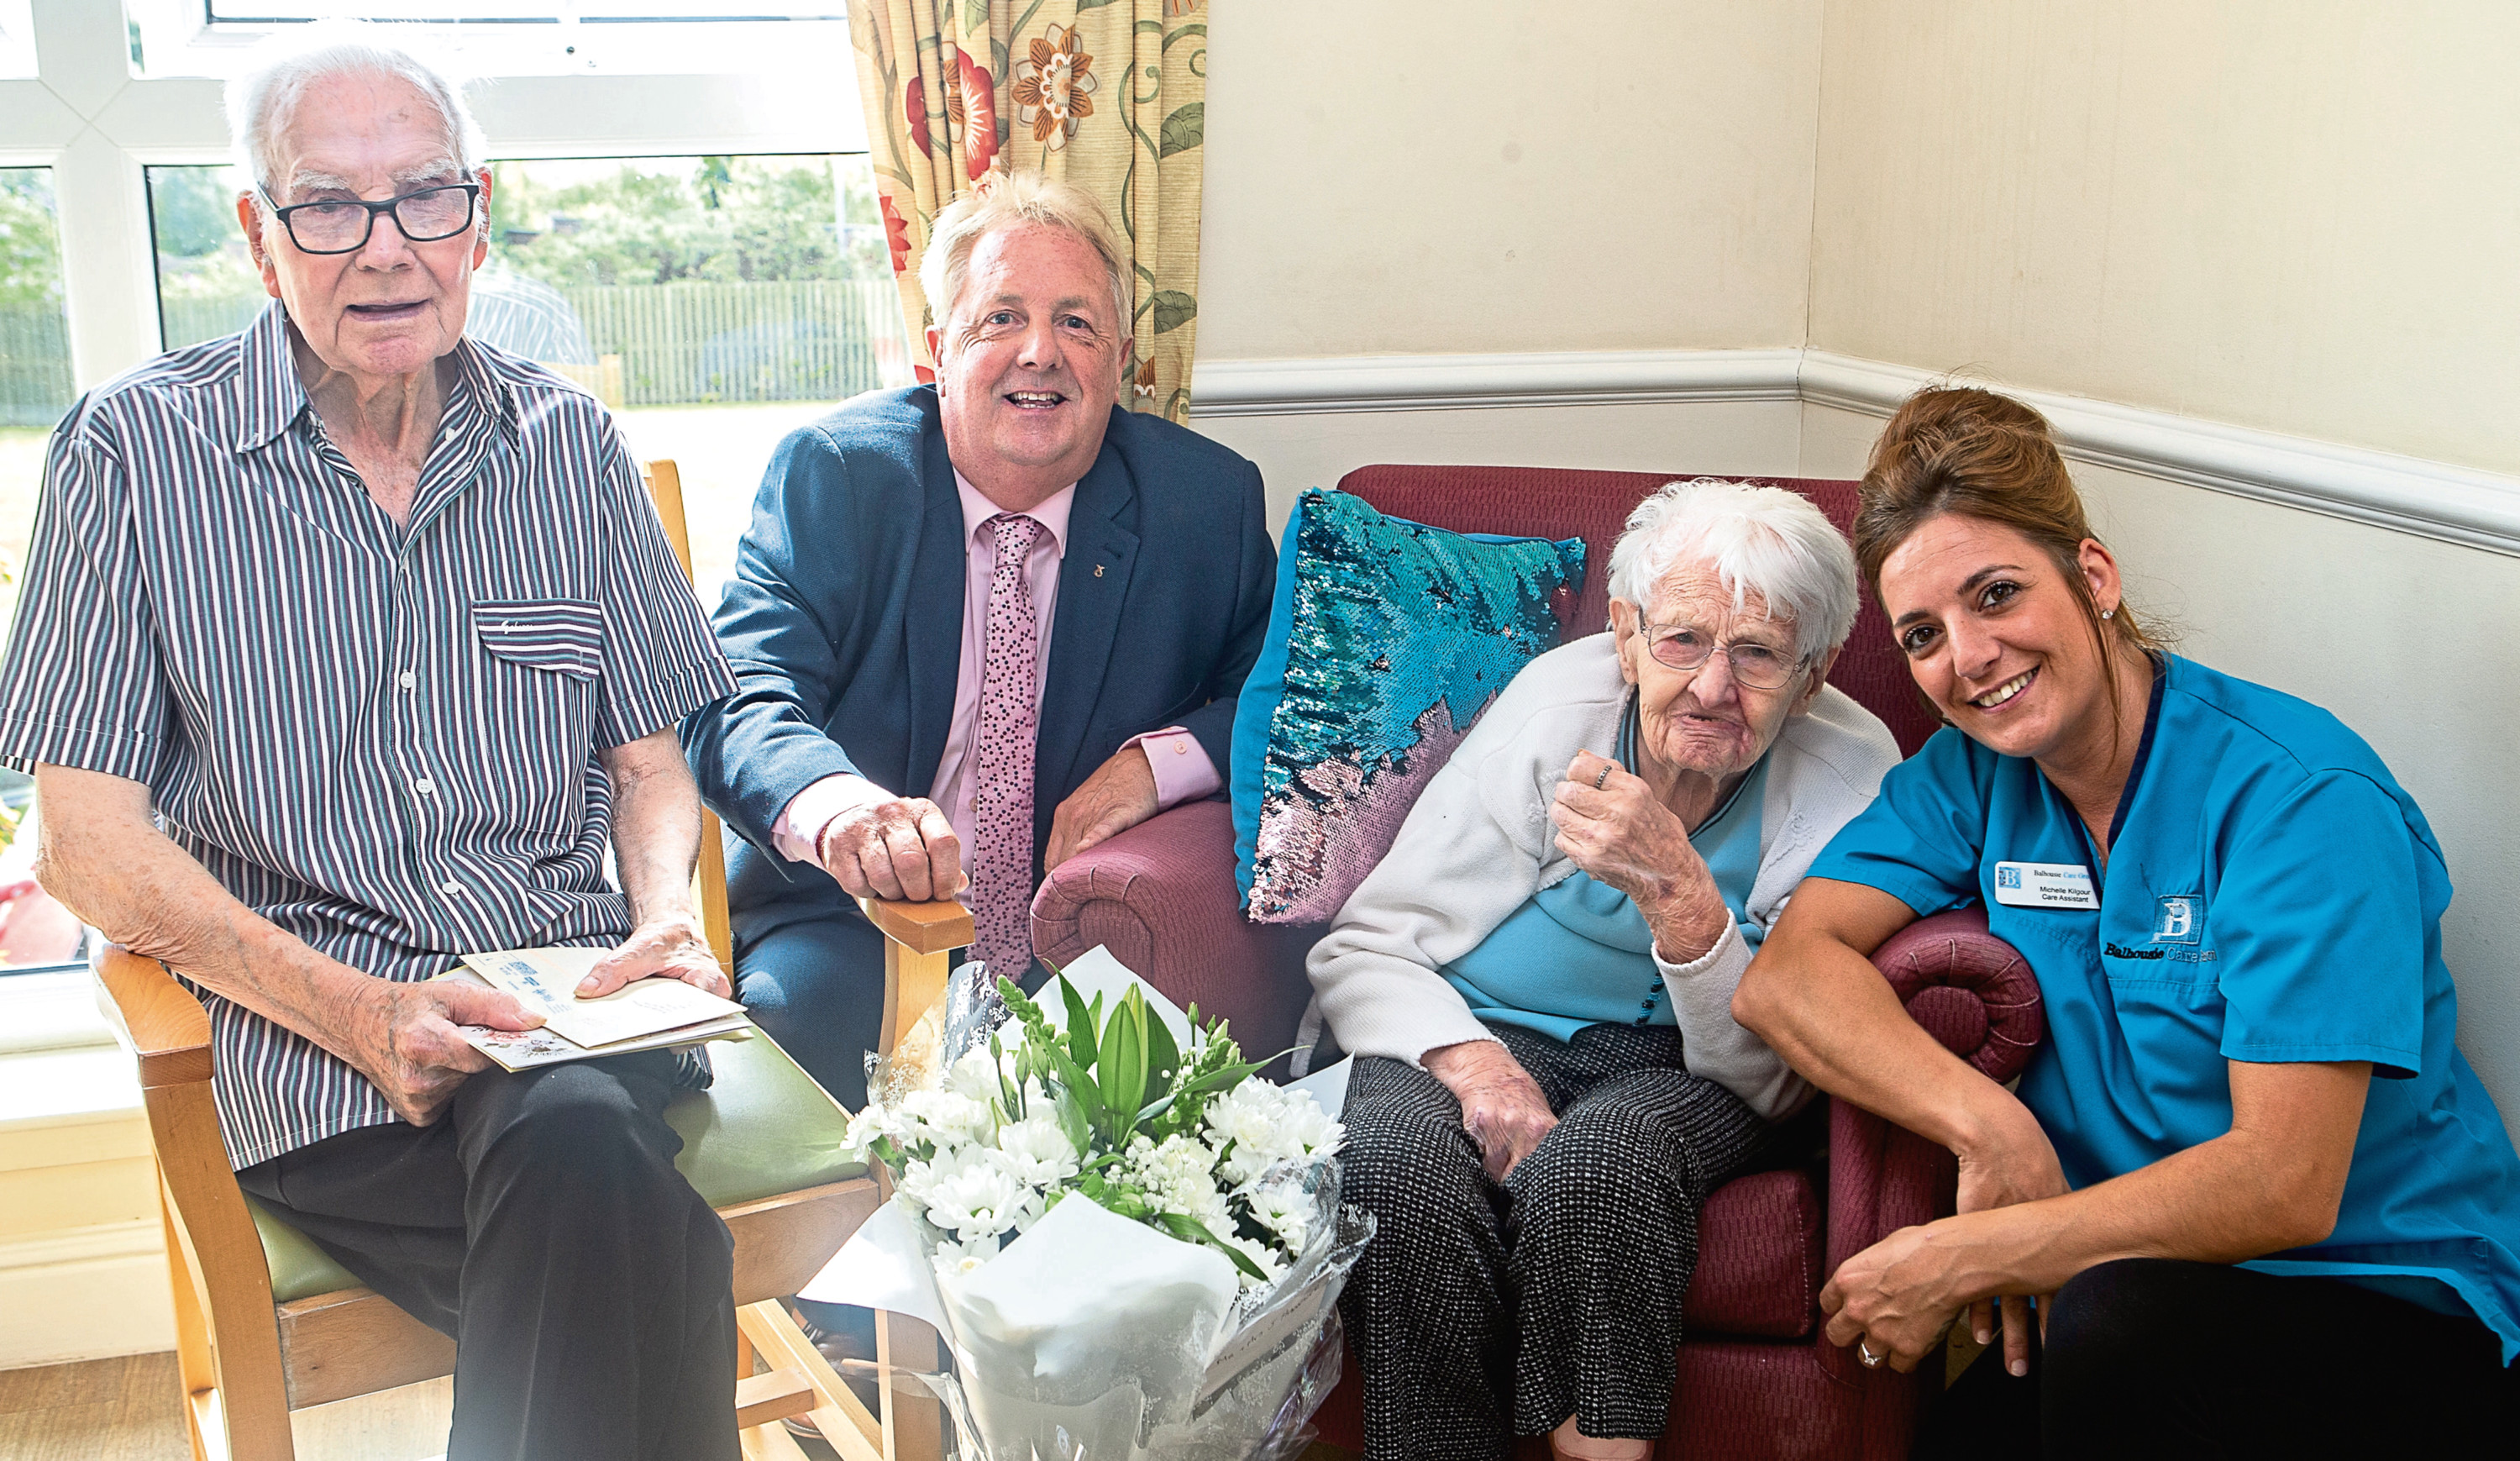 James and Netta Harrower, both residents at  Forth View Care Home Methyl, celebrated their 70th Wedding Anniversary on the July 14 2019.